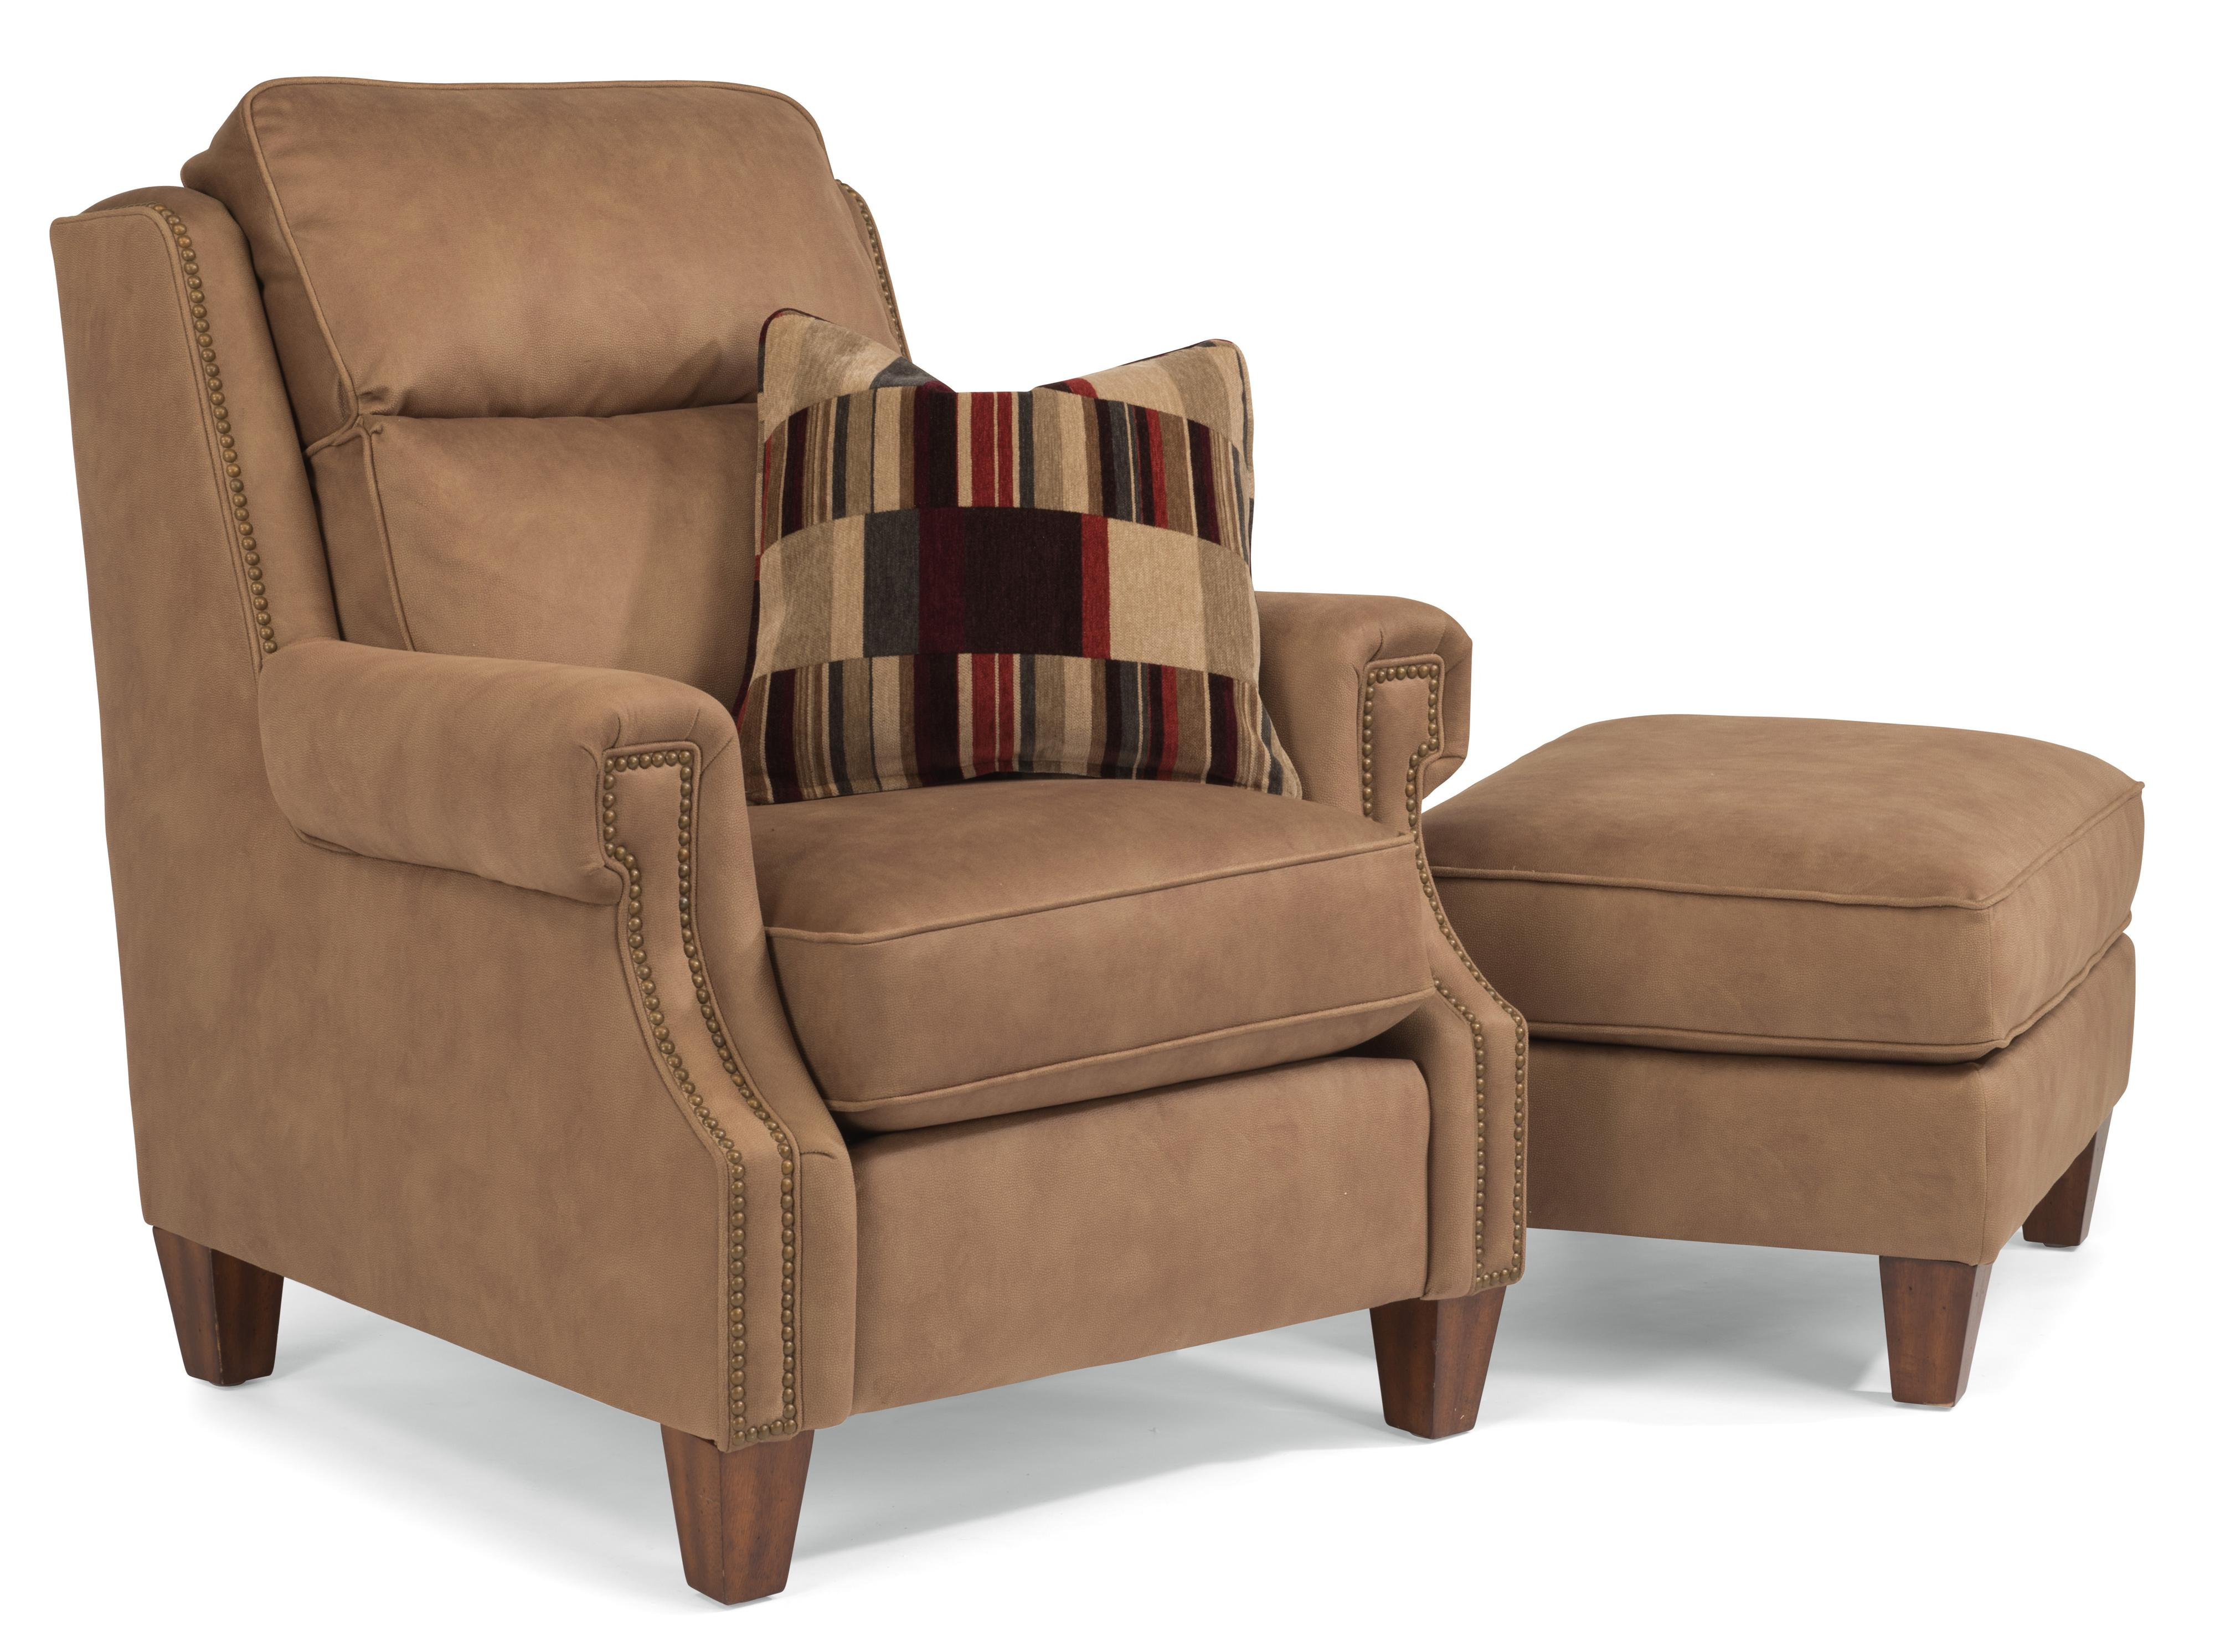 Flexsteel Judson Chair and Ottoman - Item Number: 7819-10+7819-08-581-74